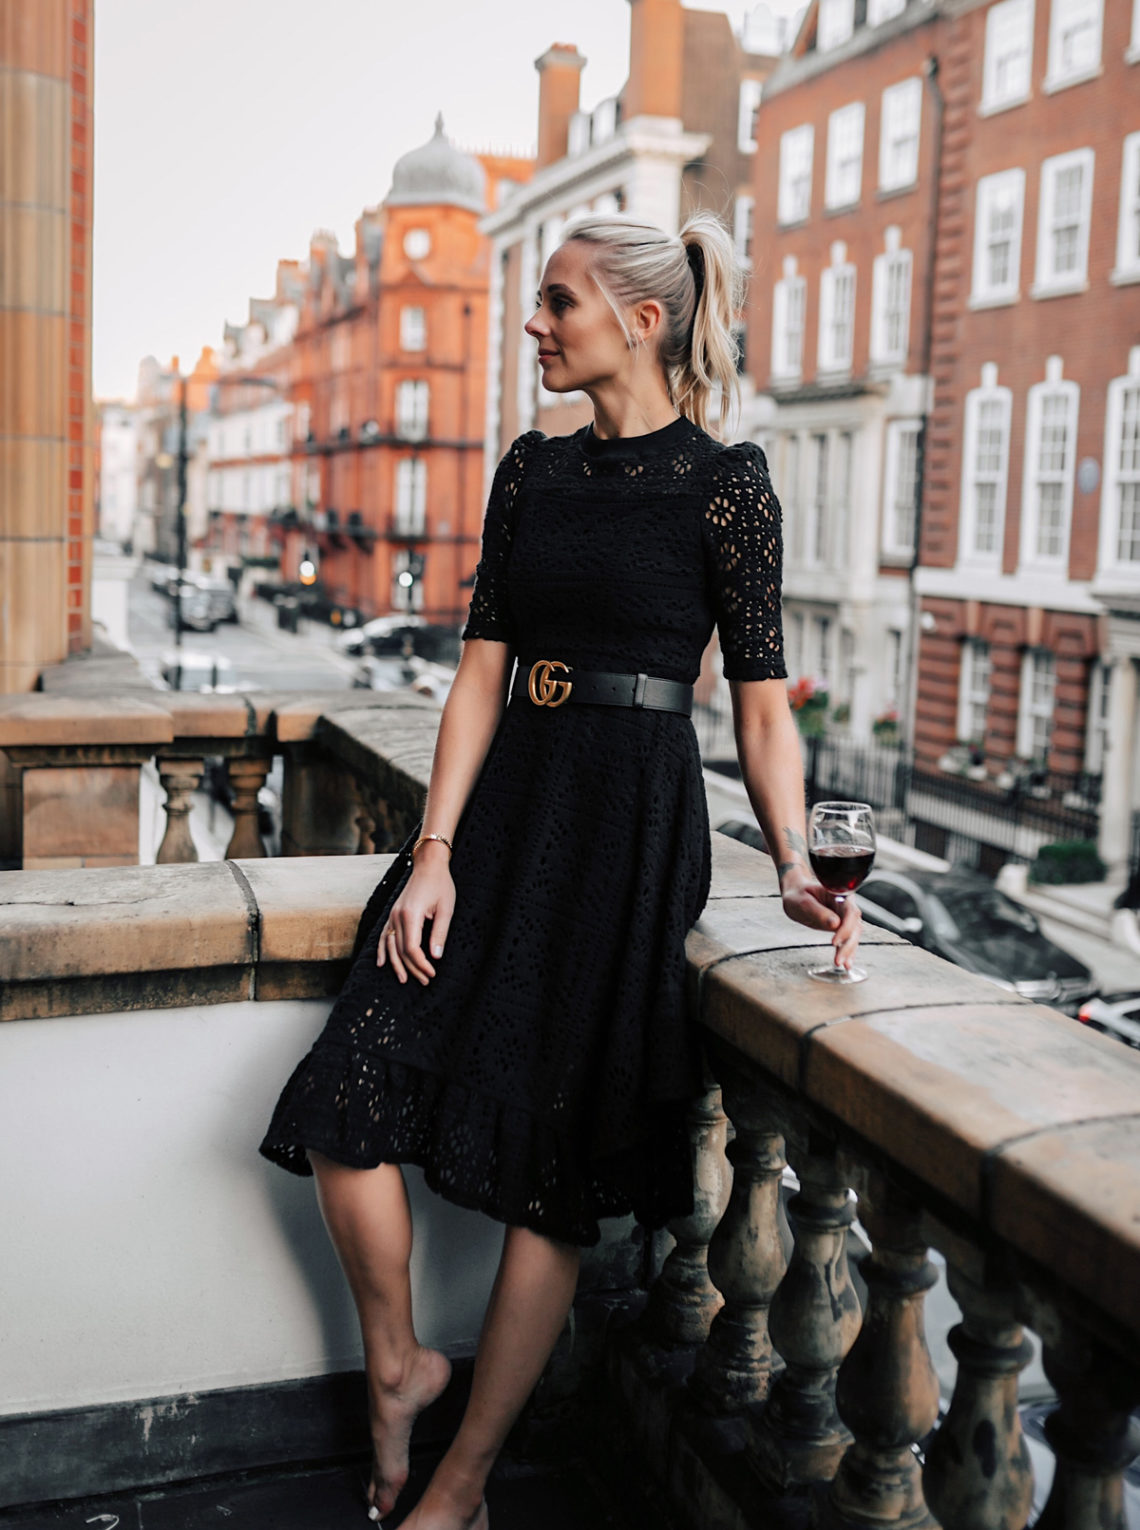 Blonde Women Wearing Black Lace Dress with Gucci Belt on London Balcony